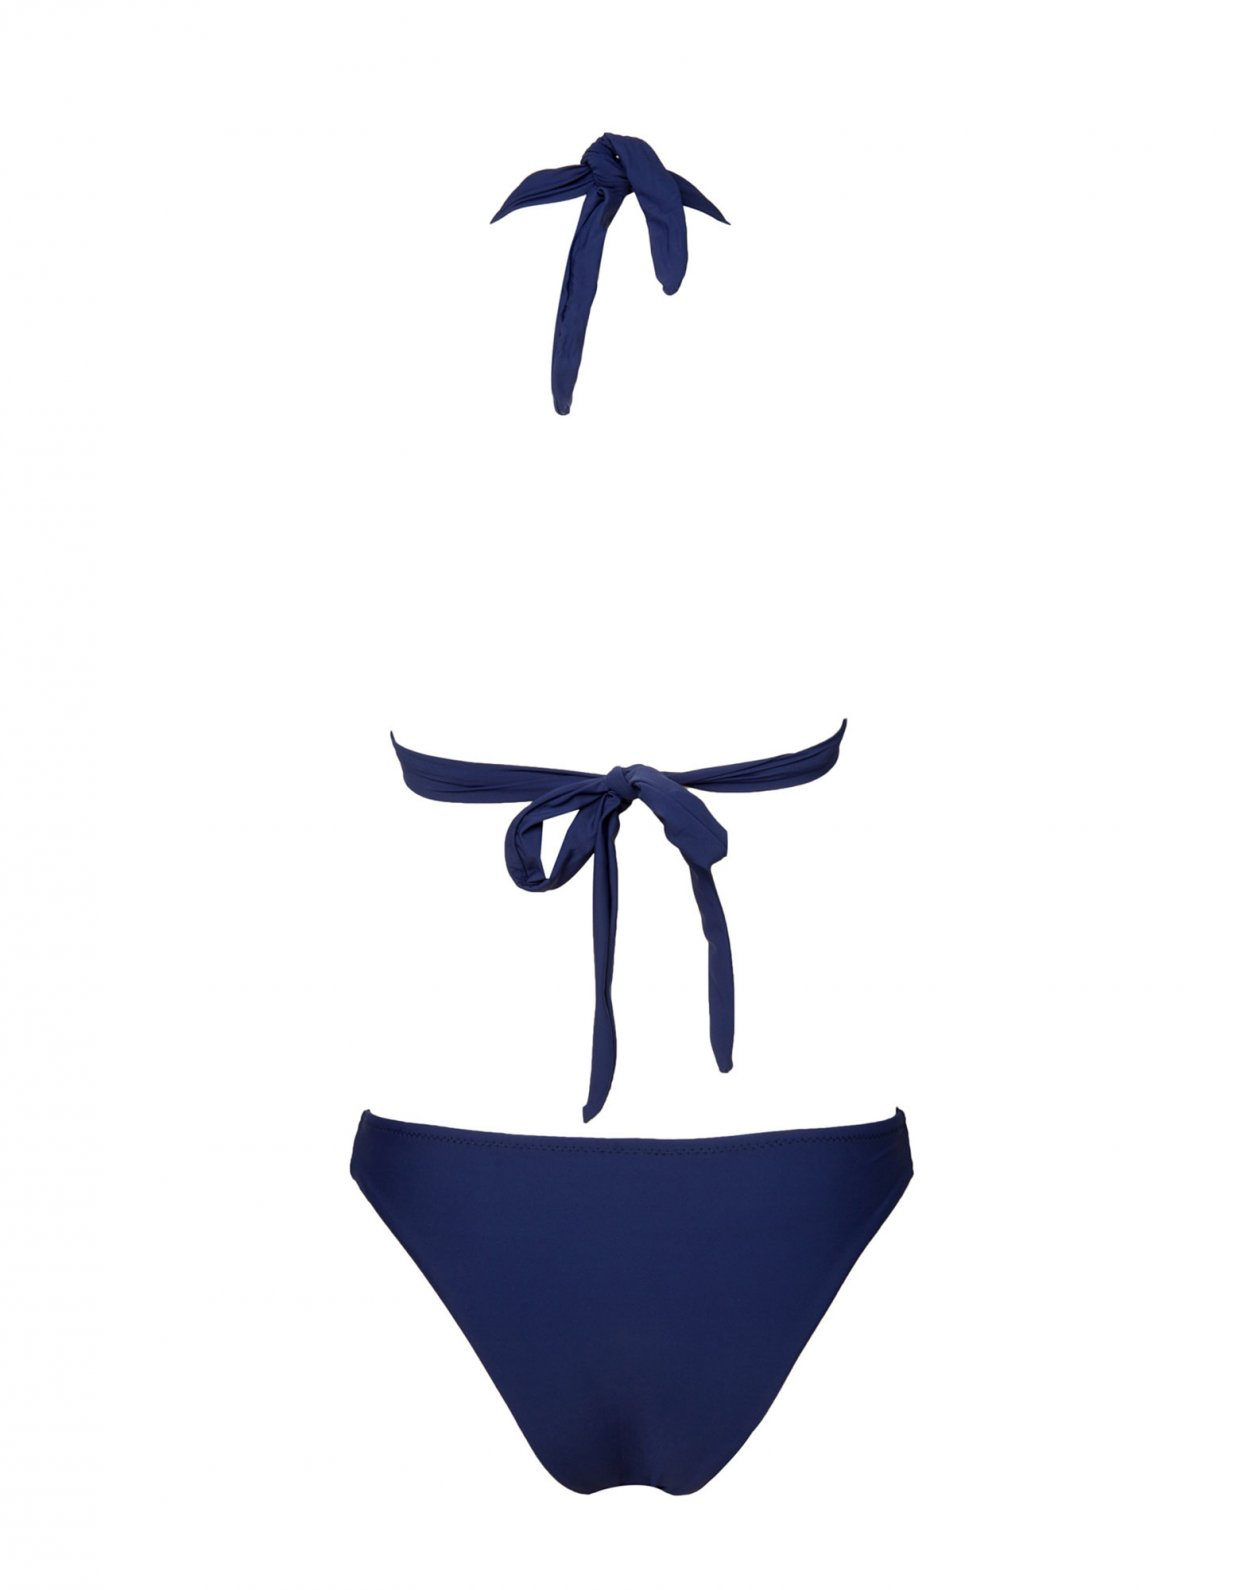 Lookseri swimwear Iris bikini patriot blue